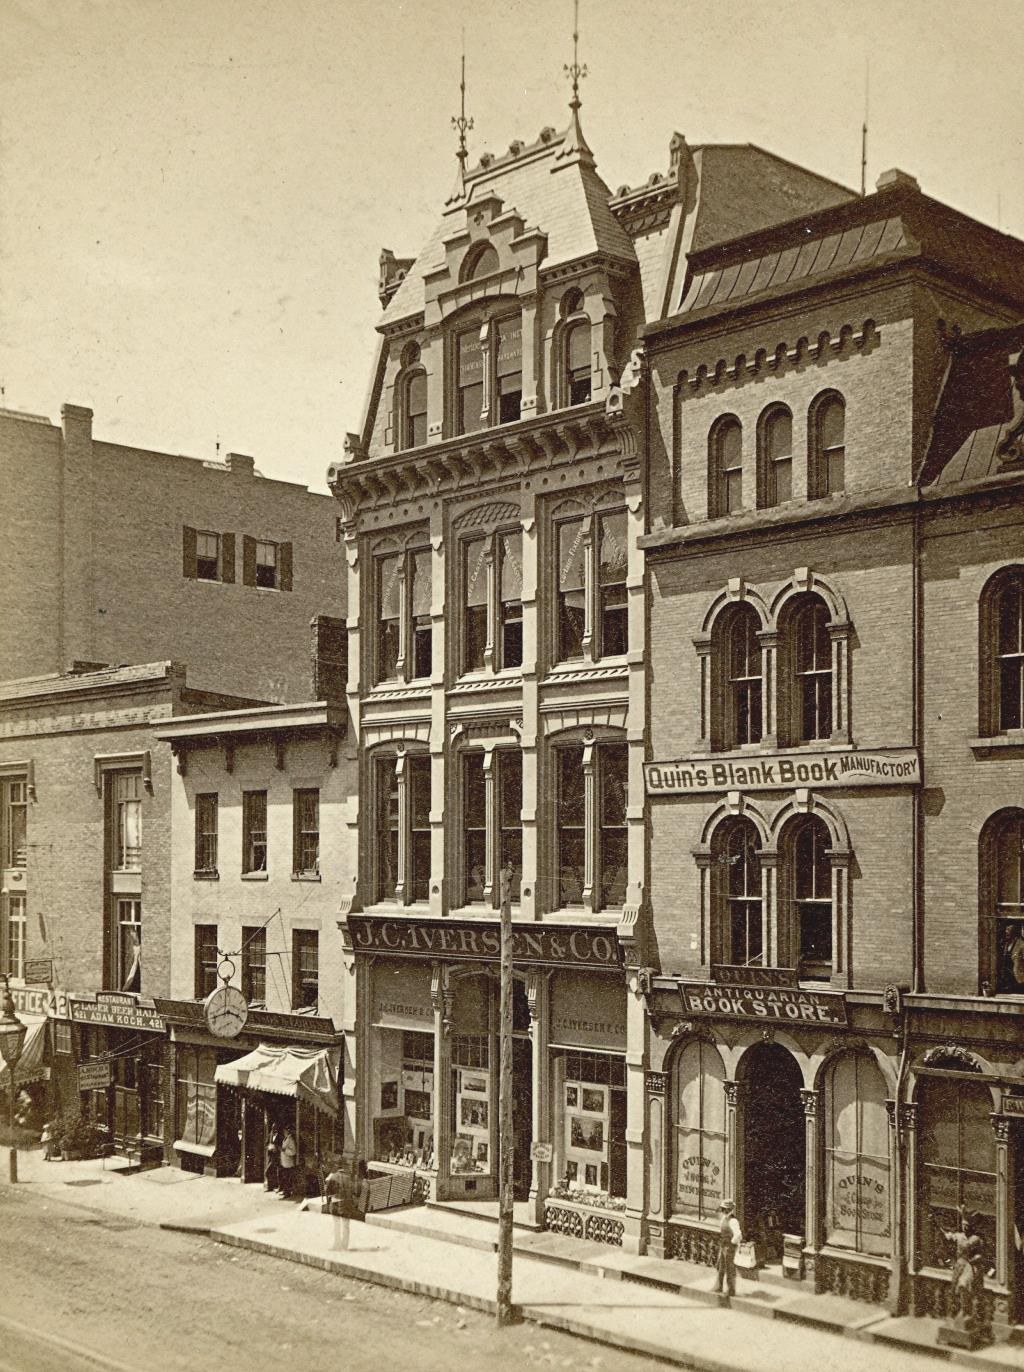 J.C. Iverson & Co. About 1879. Image courtesy of Jeff Beutner.